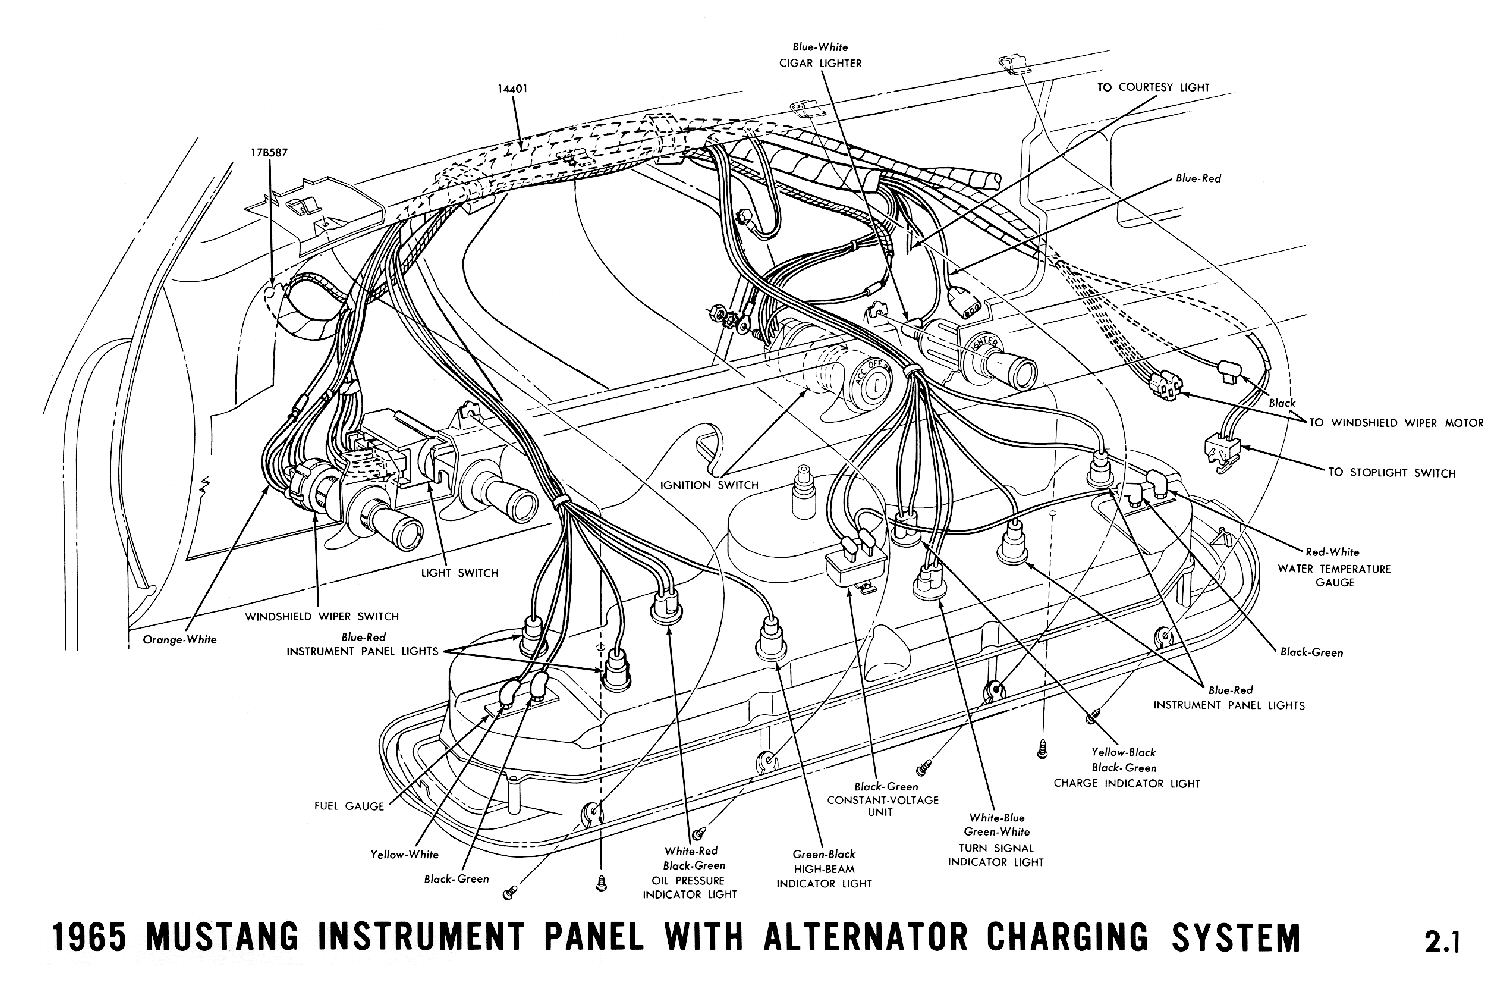 1965a 1965 mustang wiring diagrams average joe restoration instrument cluster wiring diagram at eliteediting.co